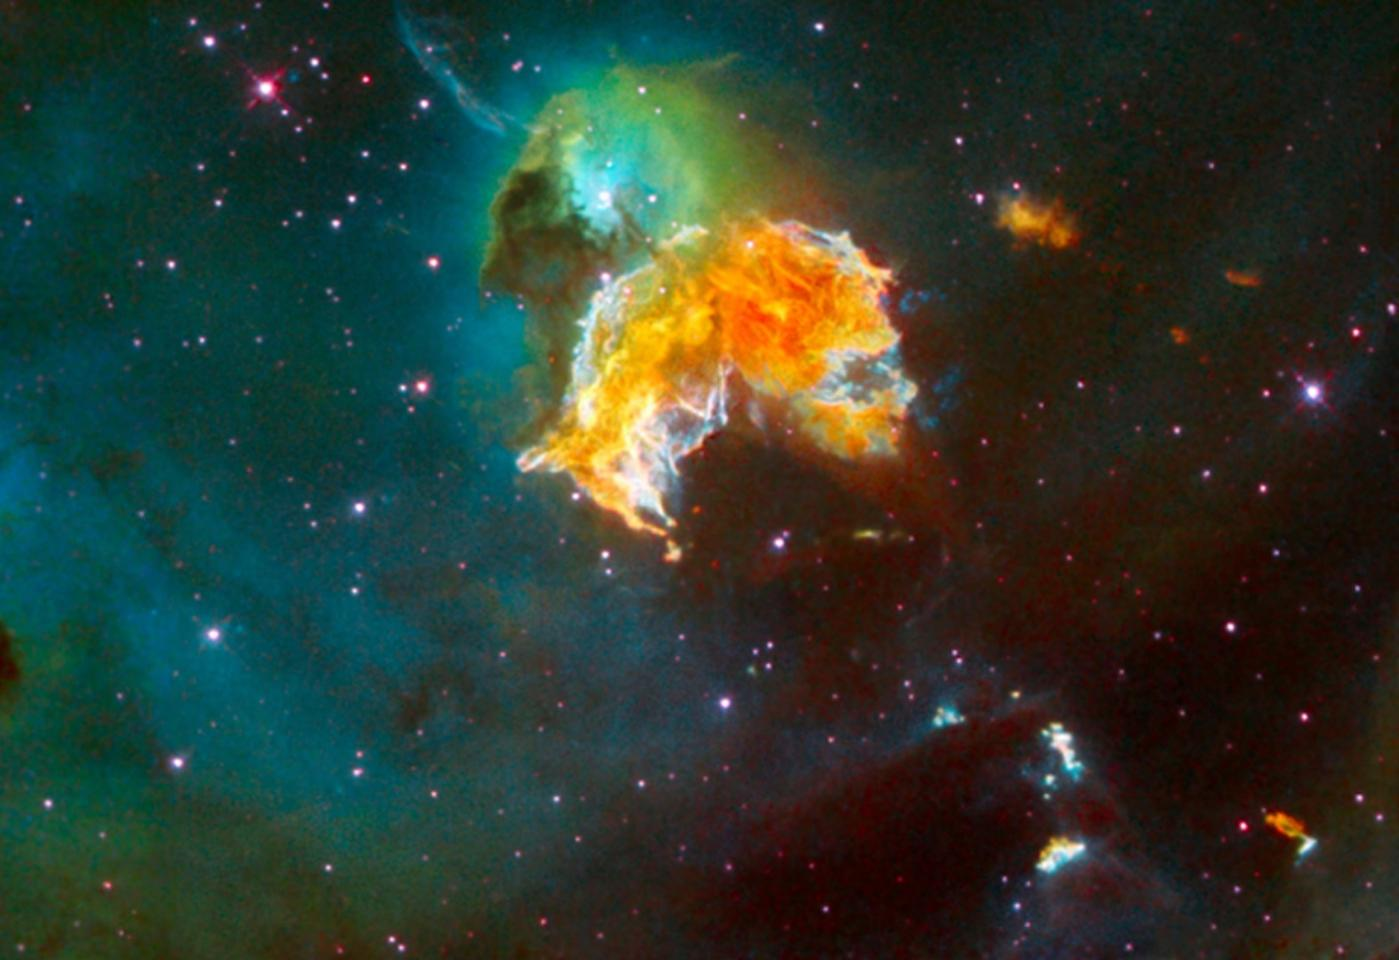 Radiation from nearby supernovae may have been intense enough to affect life on Earth